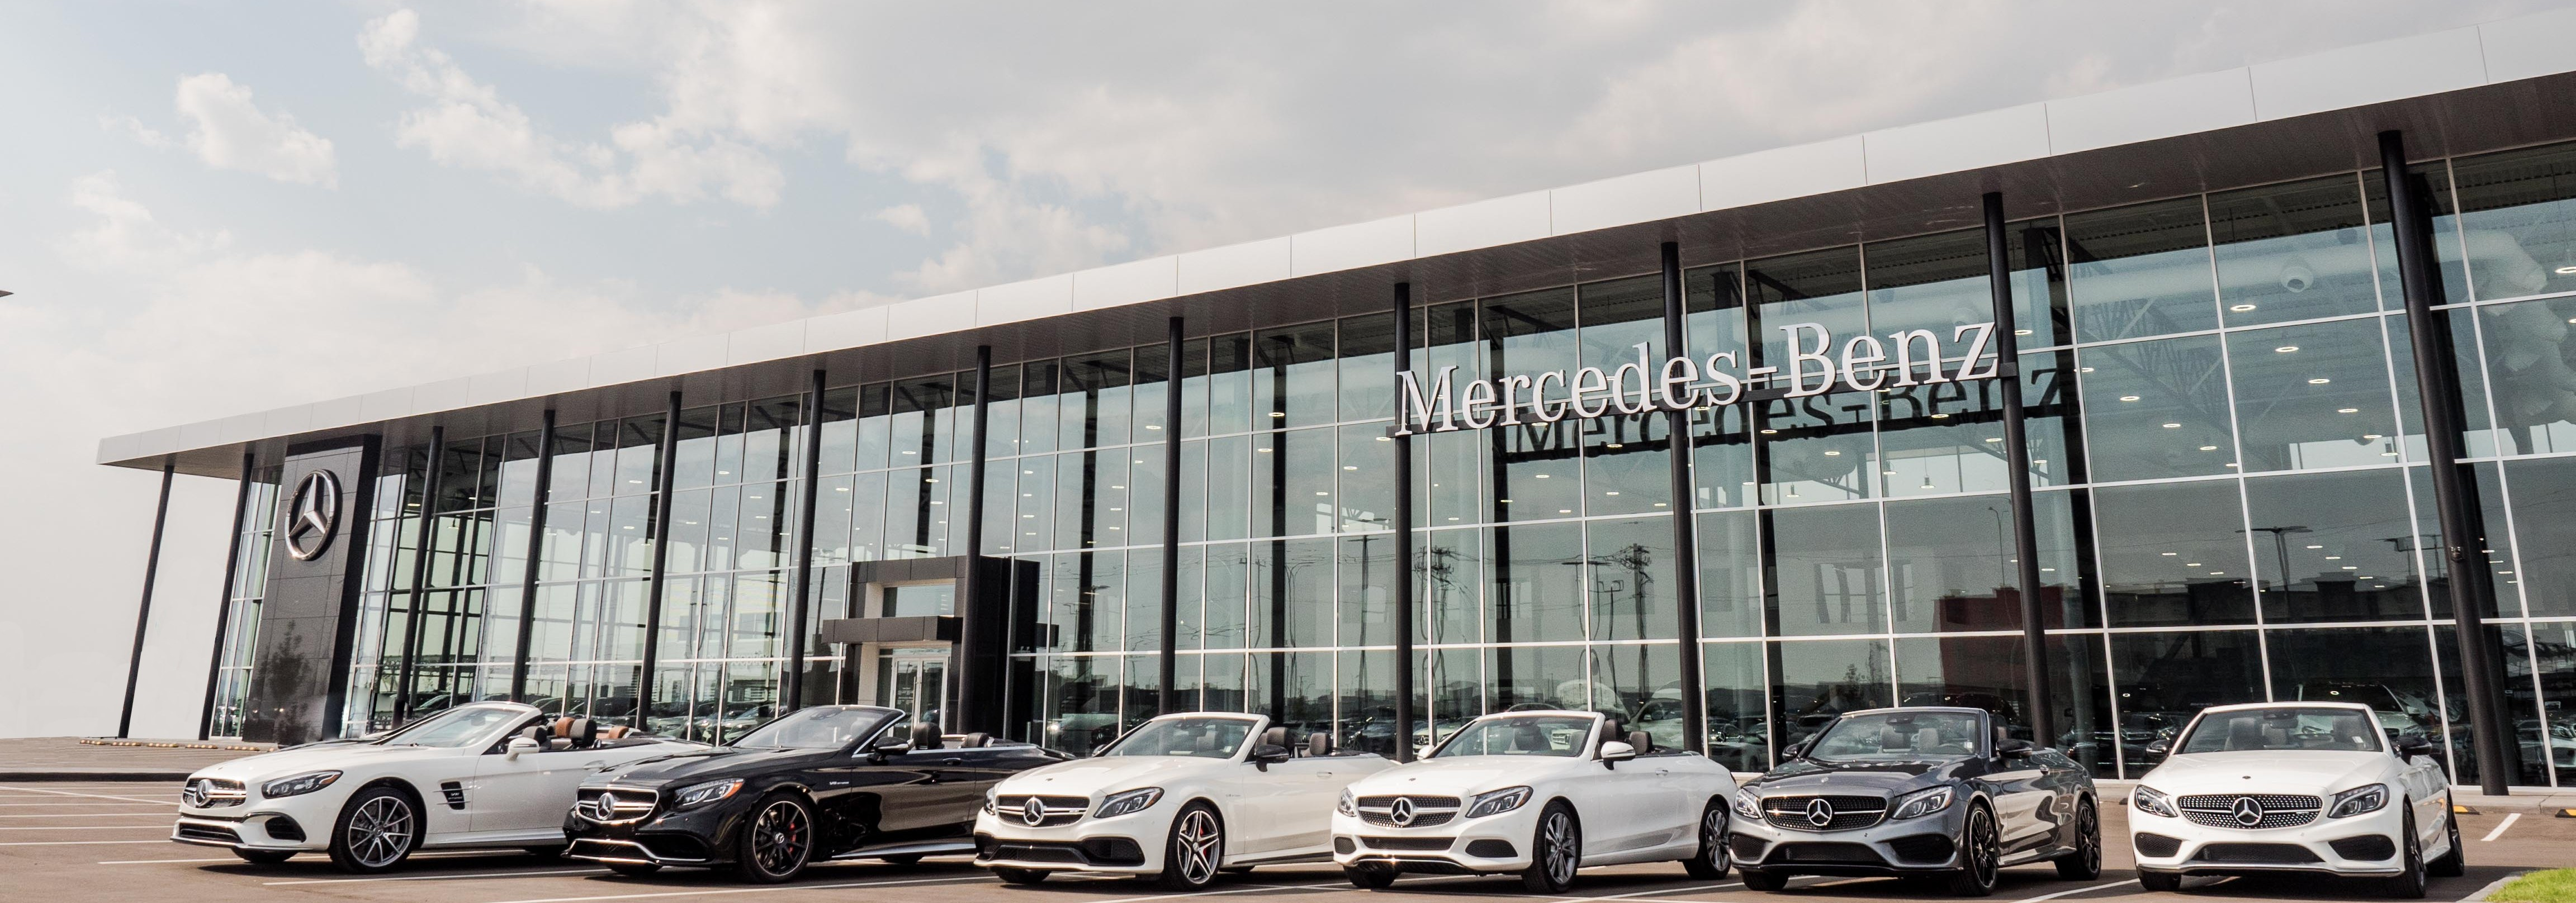 Mercedes car dealership near me fiat world test drive for Mercedes benz dealers houston